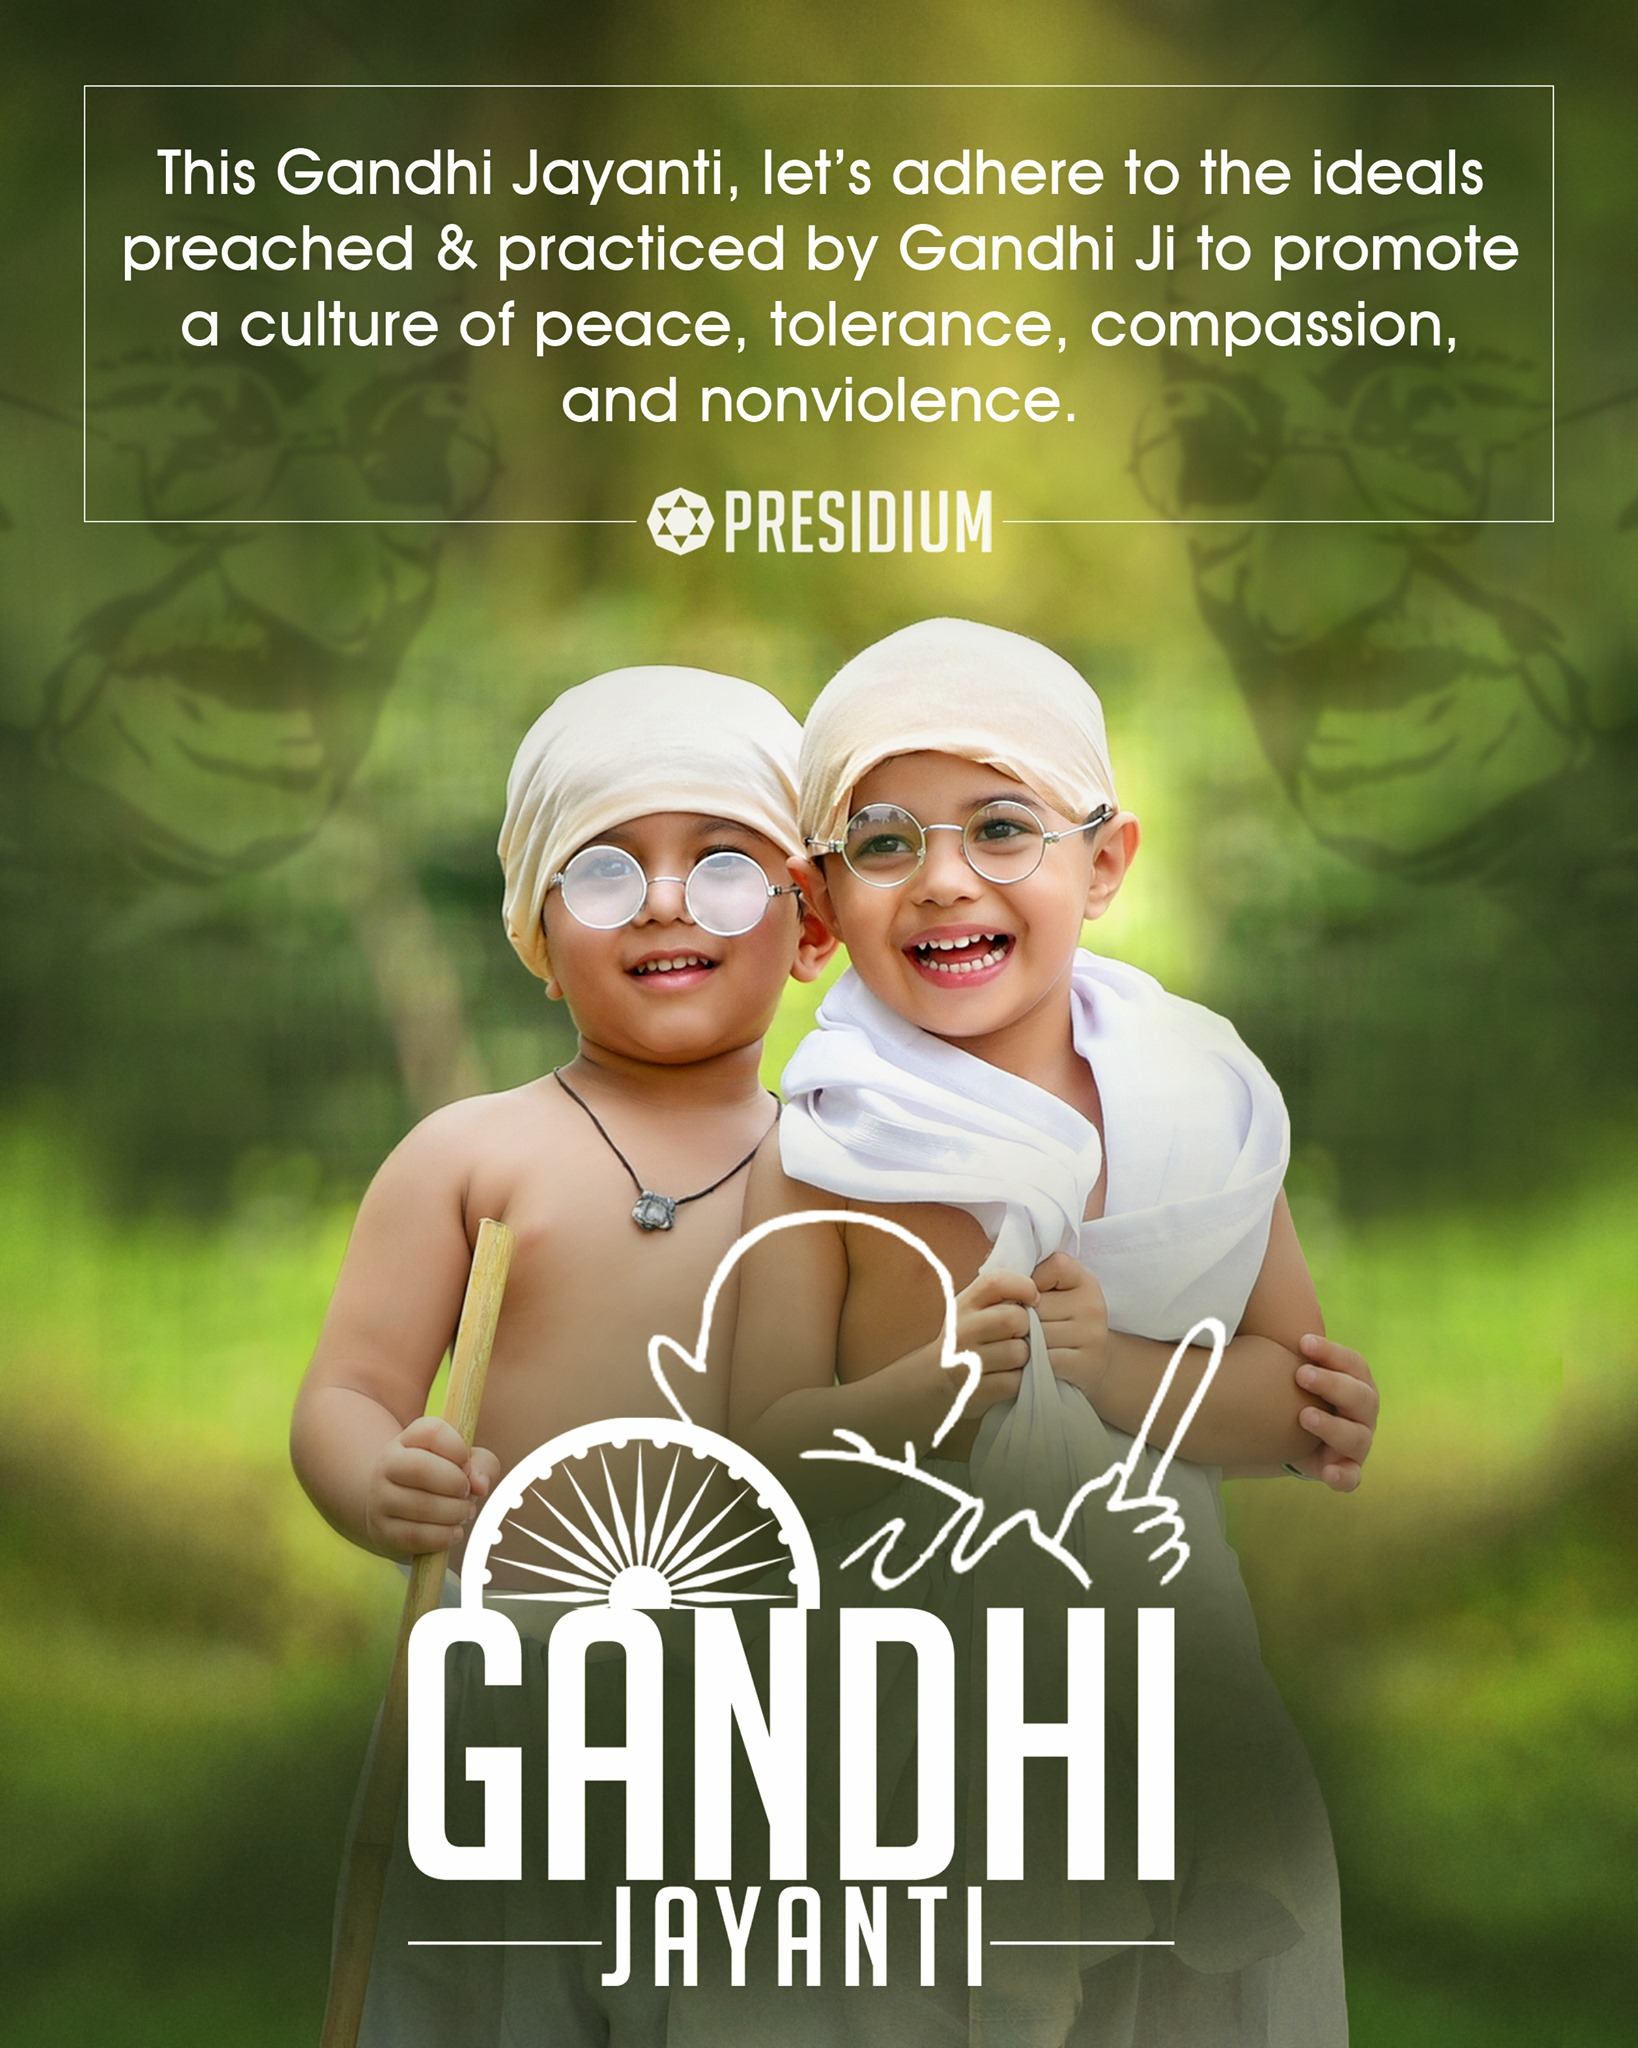 GANDHI JAYANTI: LET'S SPREAD THE IDEALS OF LOVE, TRUTH & PEACE